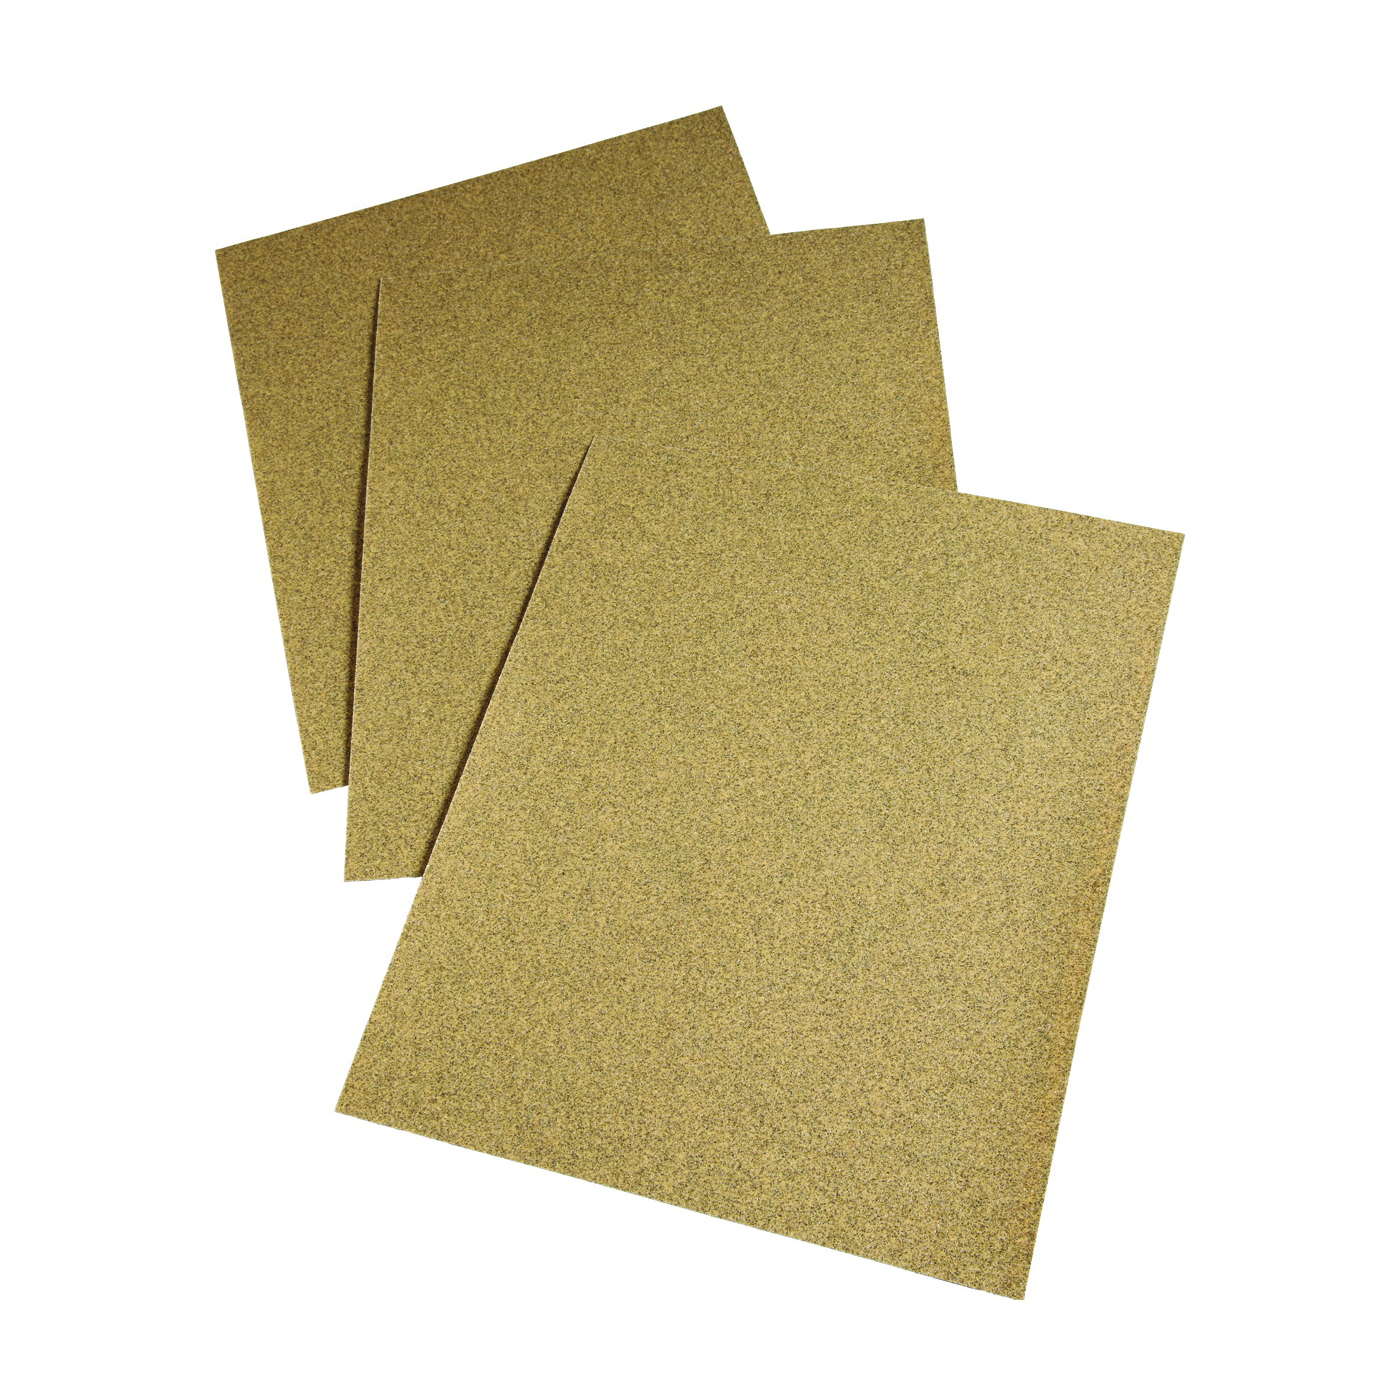 Picture of 3M 02118 Sanding Sheet, 11 in L, 9 in W, Coarse, 40 Grit, Aluminum Oxide Abrasive, Paper Backing